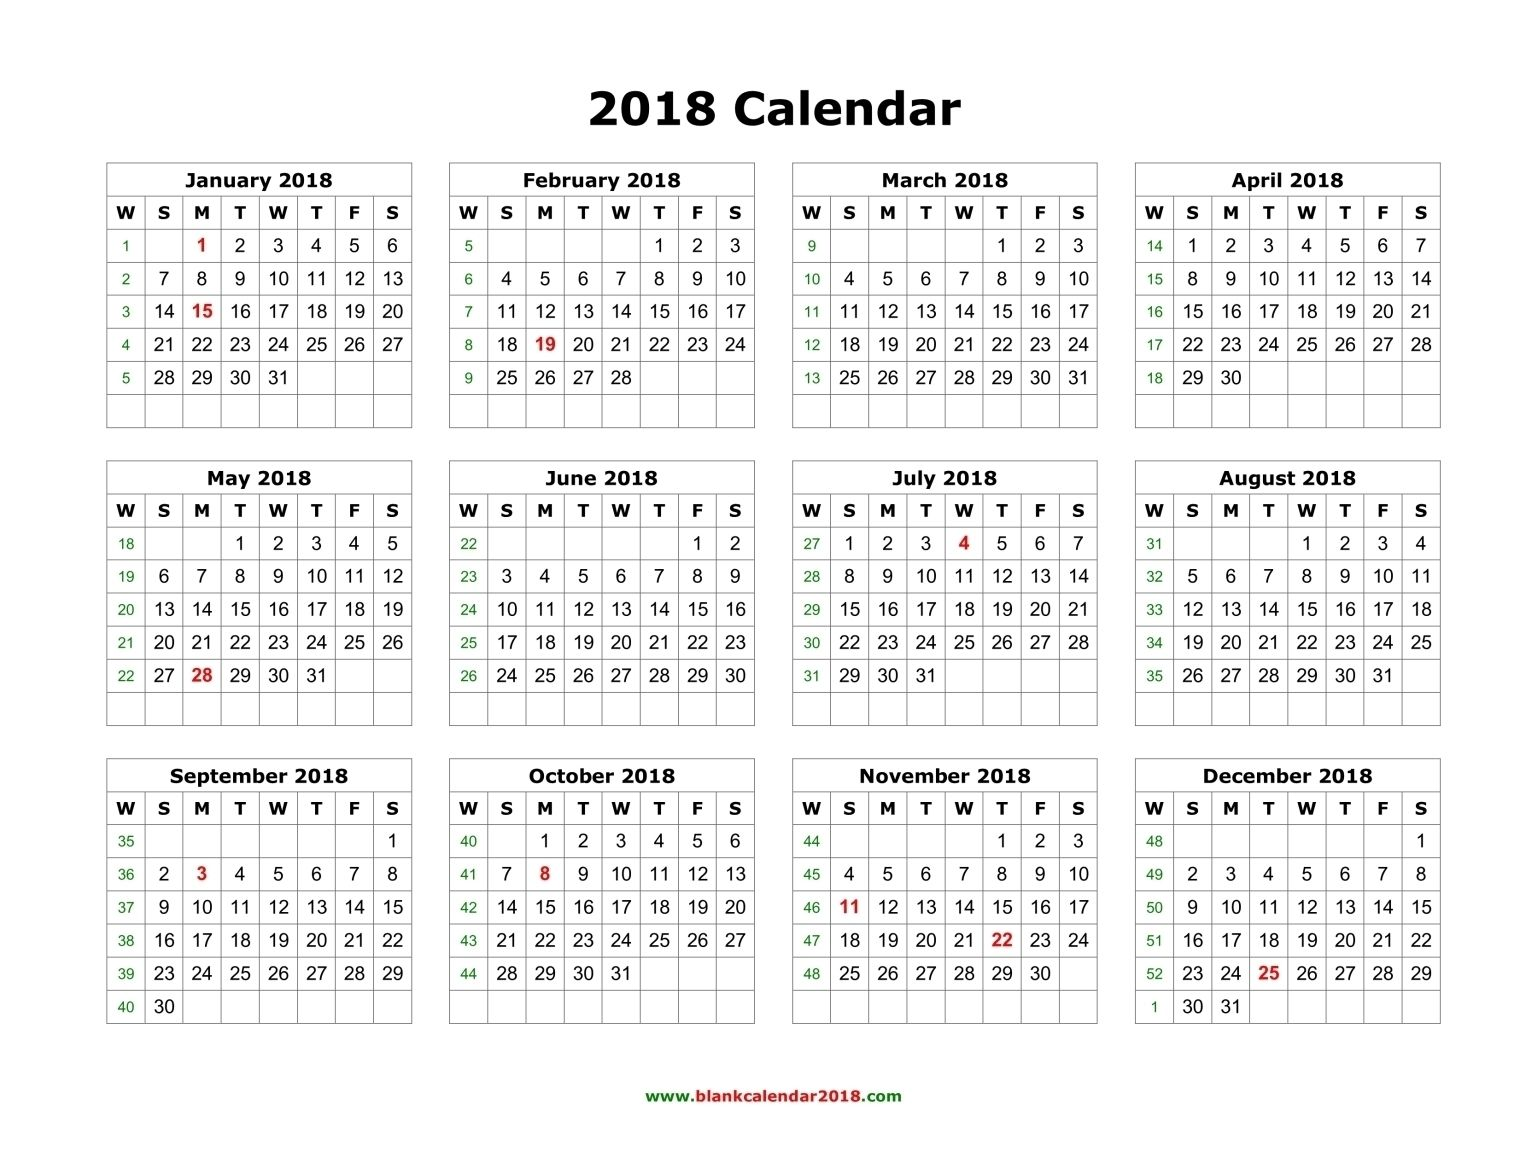 Blank Calendar 2018 Free 12 Month Calendar Printable Yearly Calendar Template Monthly Calendar Template